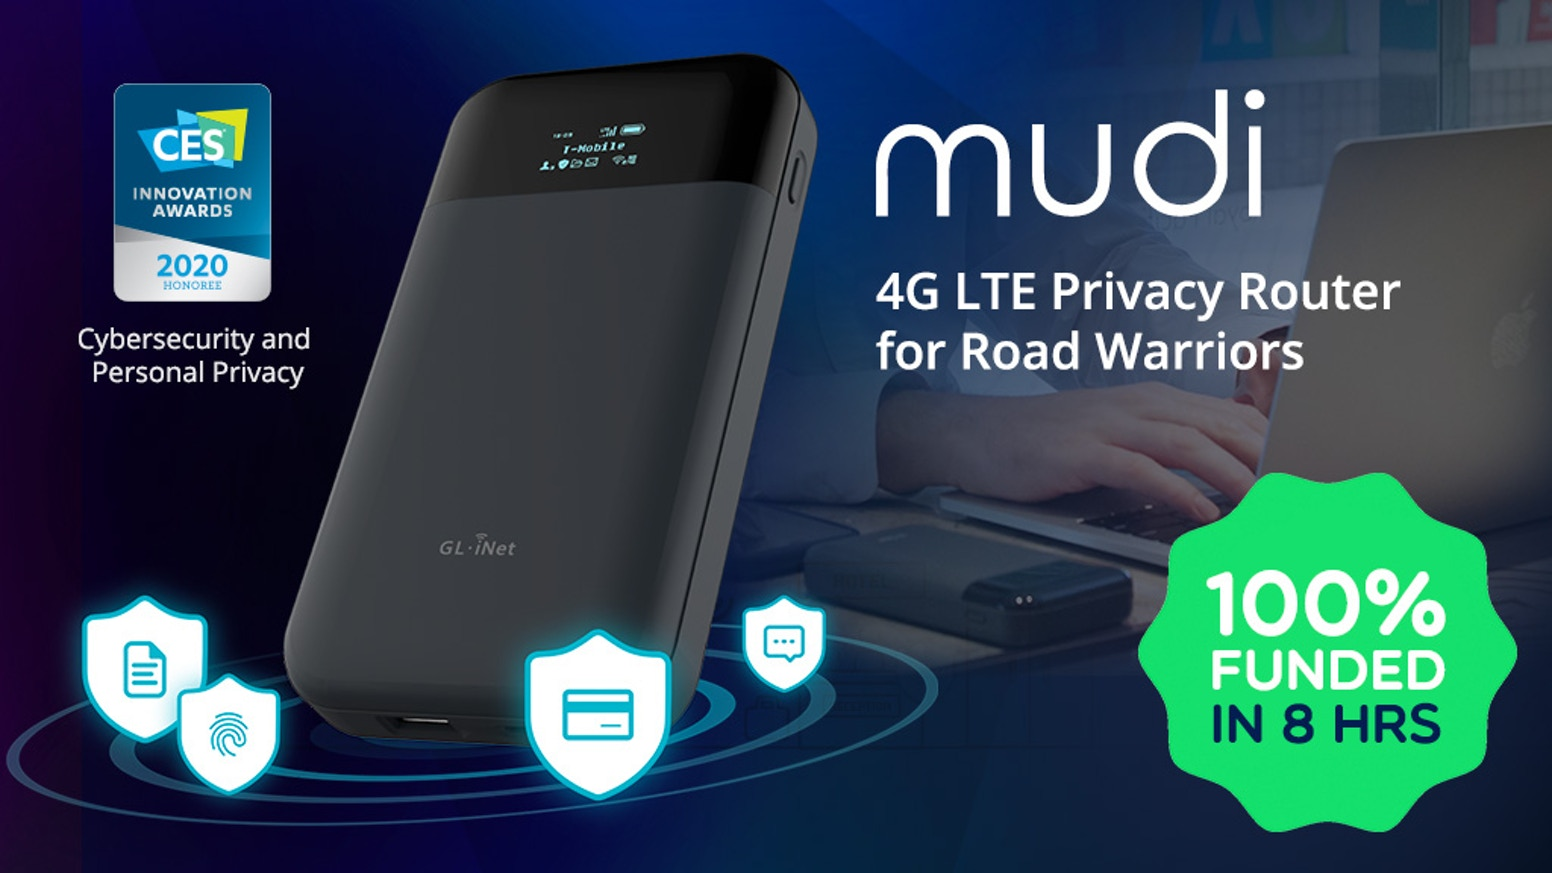 A portable 4G LTE wireless router for frequent travelers who want to secure their data with state-of-art cryptography wherever they are.